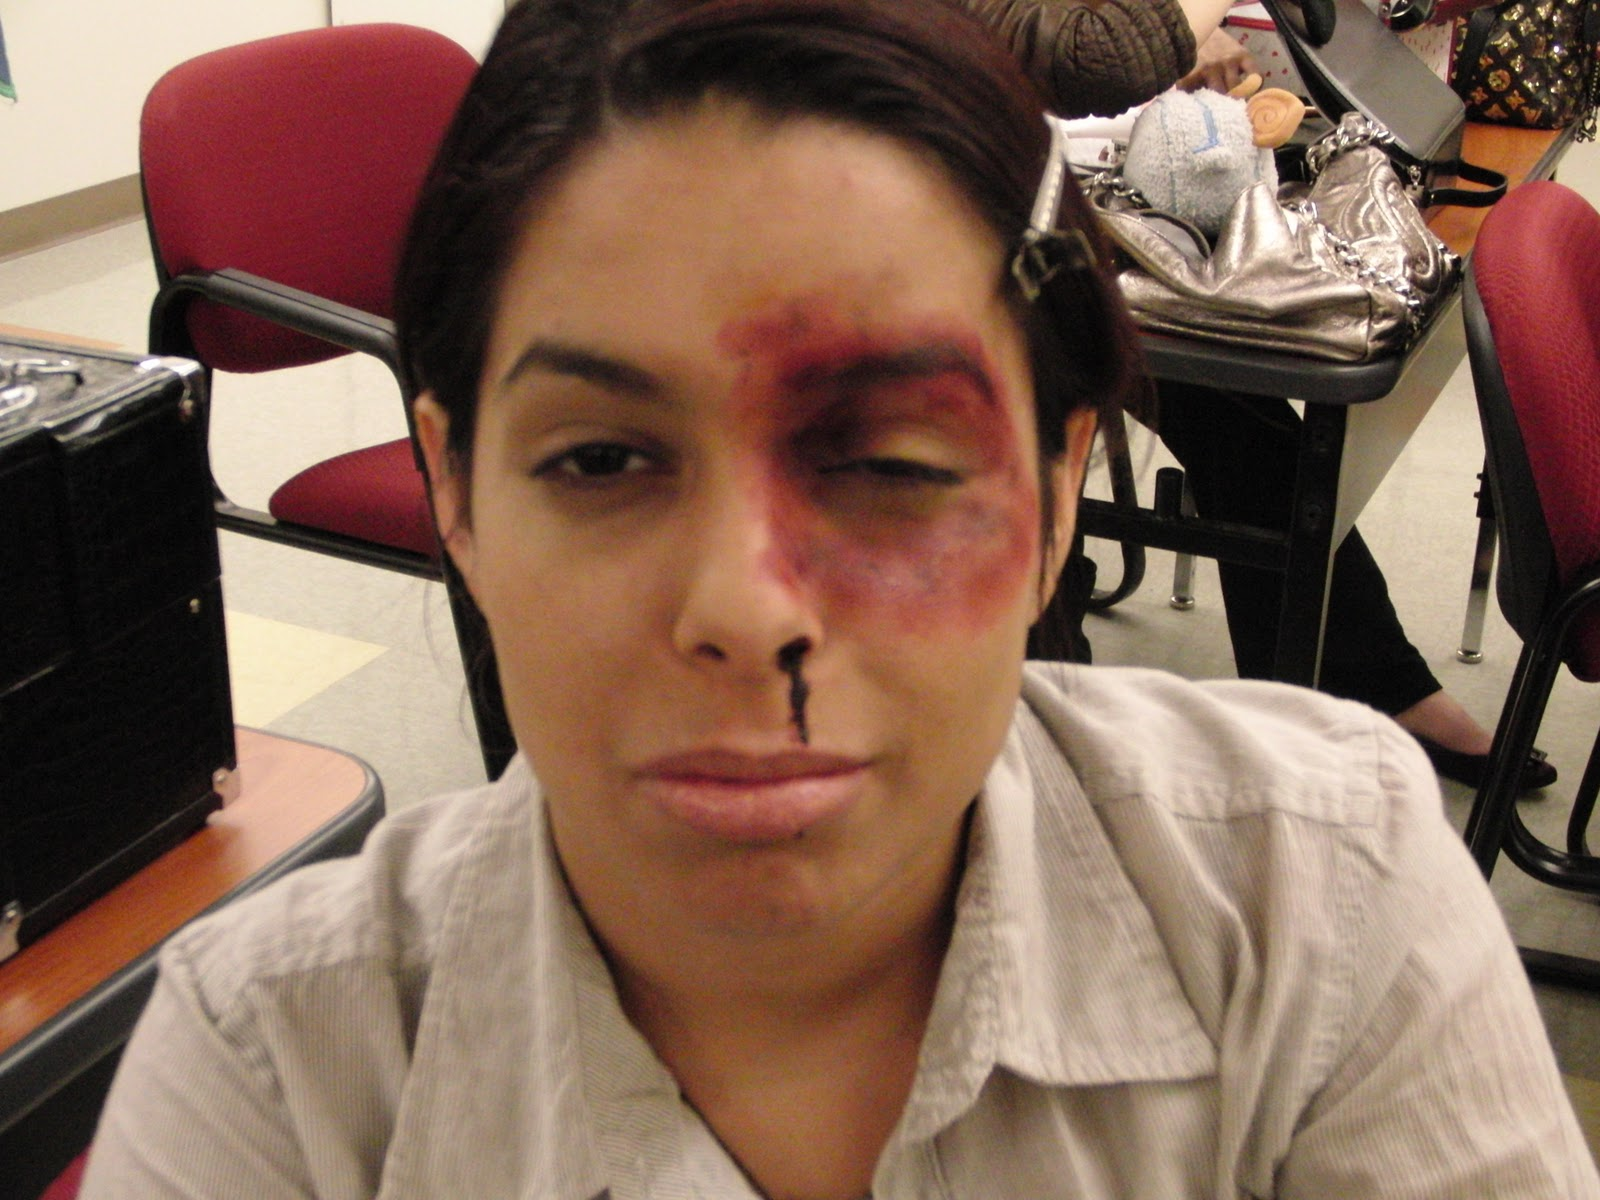 Battered Women; Abused Women; Women, Abused; Women, Battered Battered Women Pictures